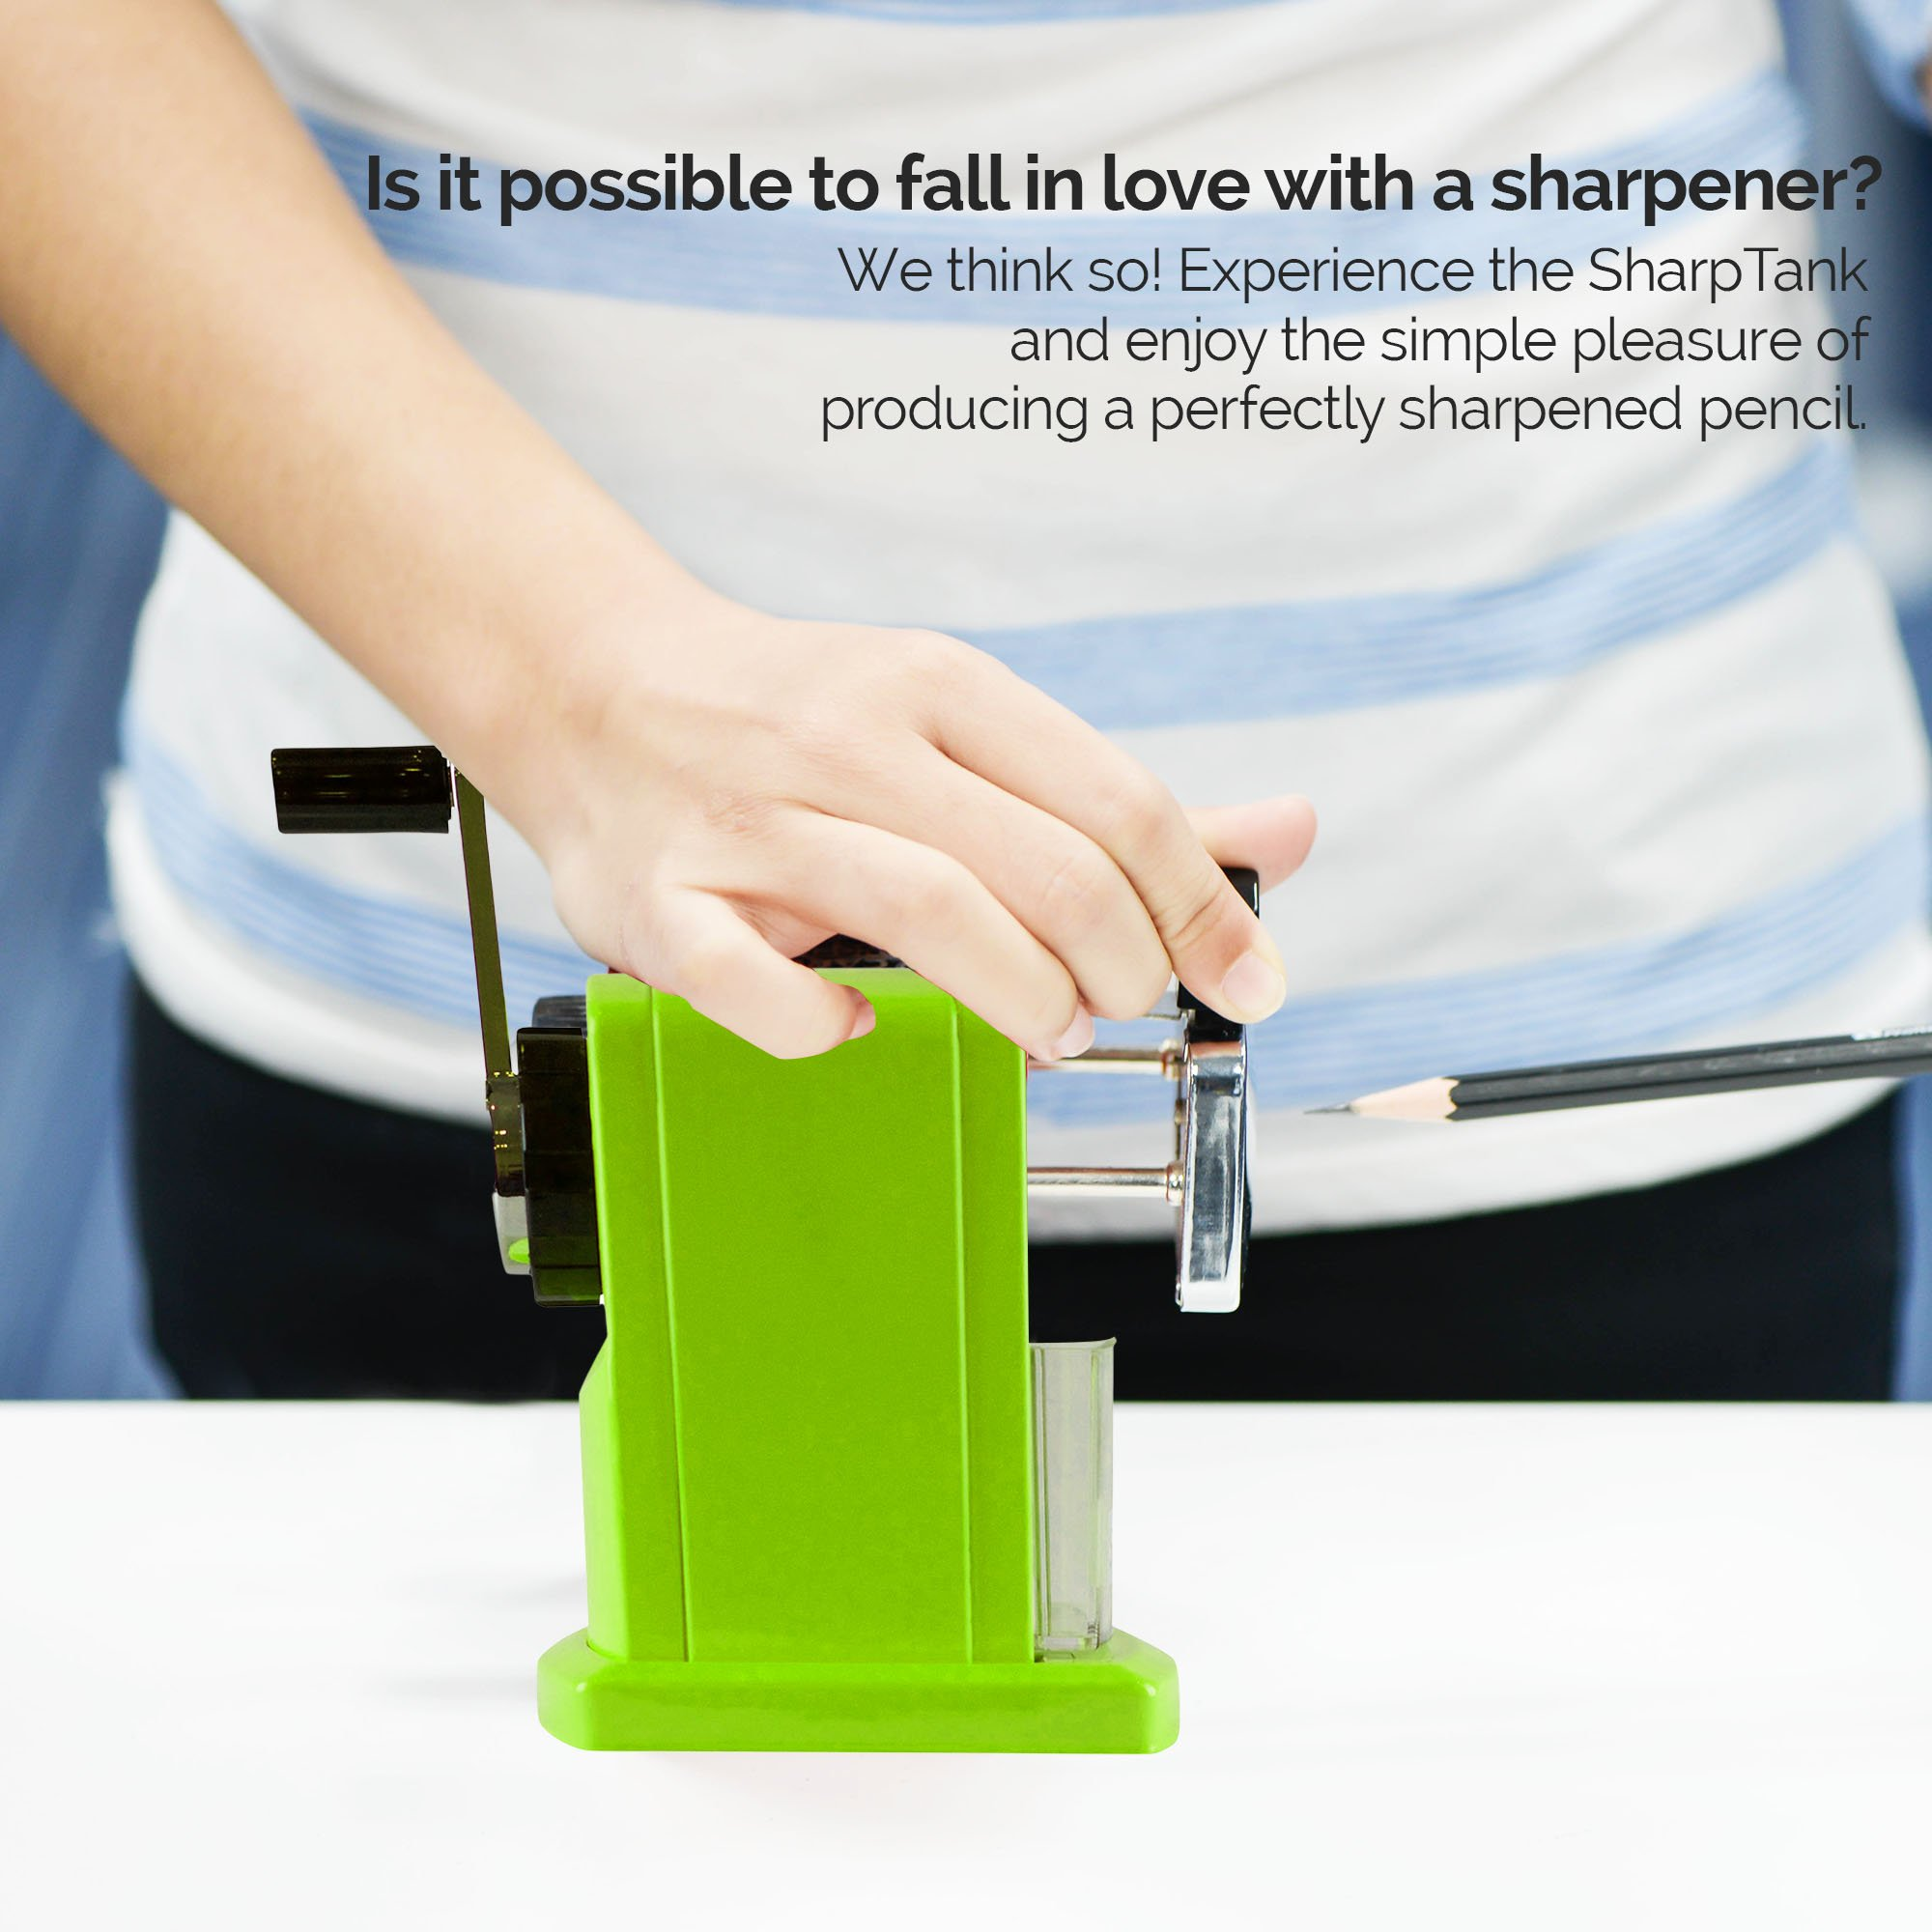 SharpTank - Portable Pencil Sharpener (Key Lime Green) - Compact & Quiet Classroom Sharpener That Gets Straight to The Point! by SHARP TANK (Image #3)